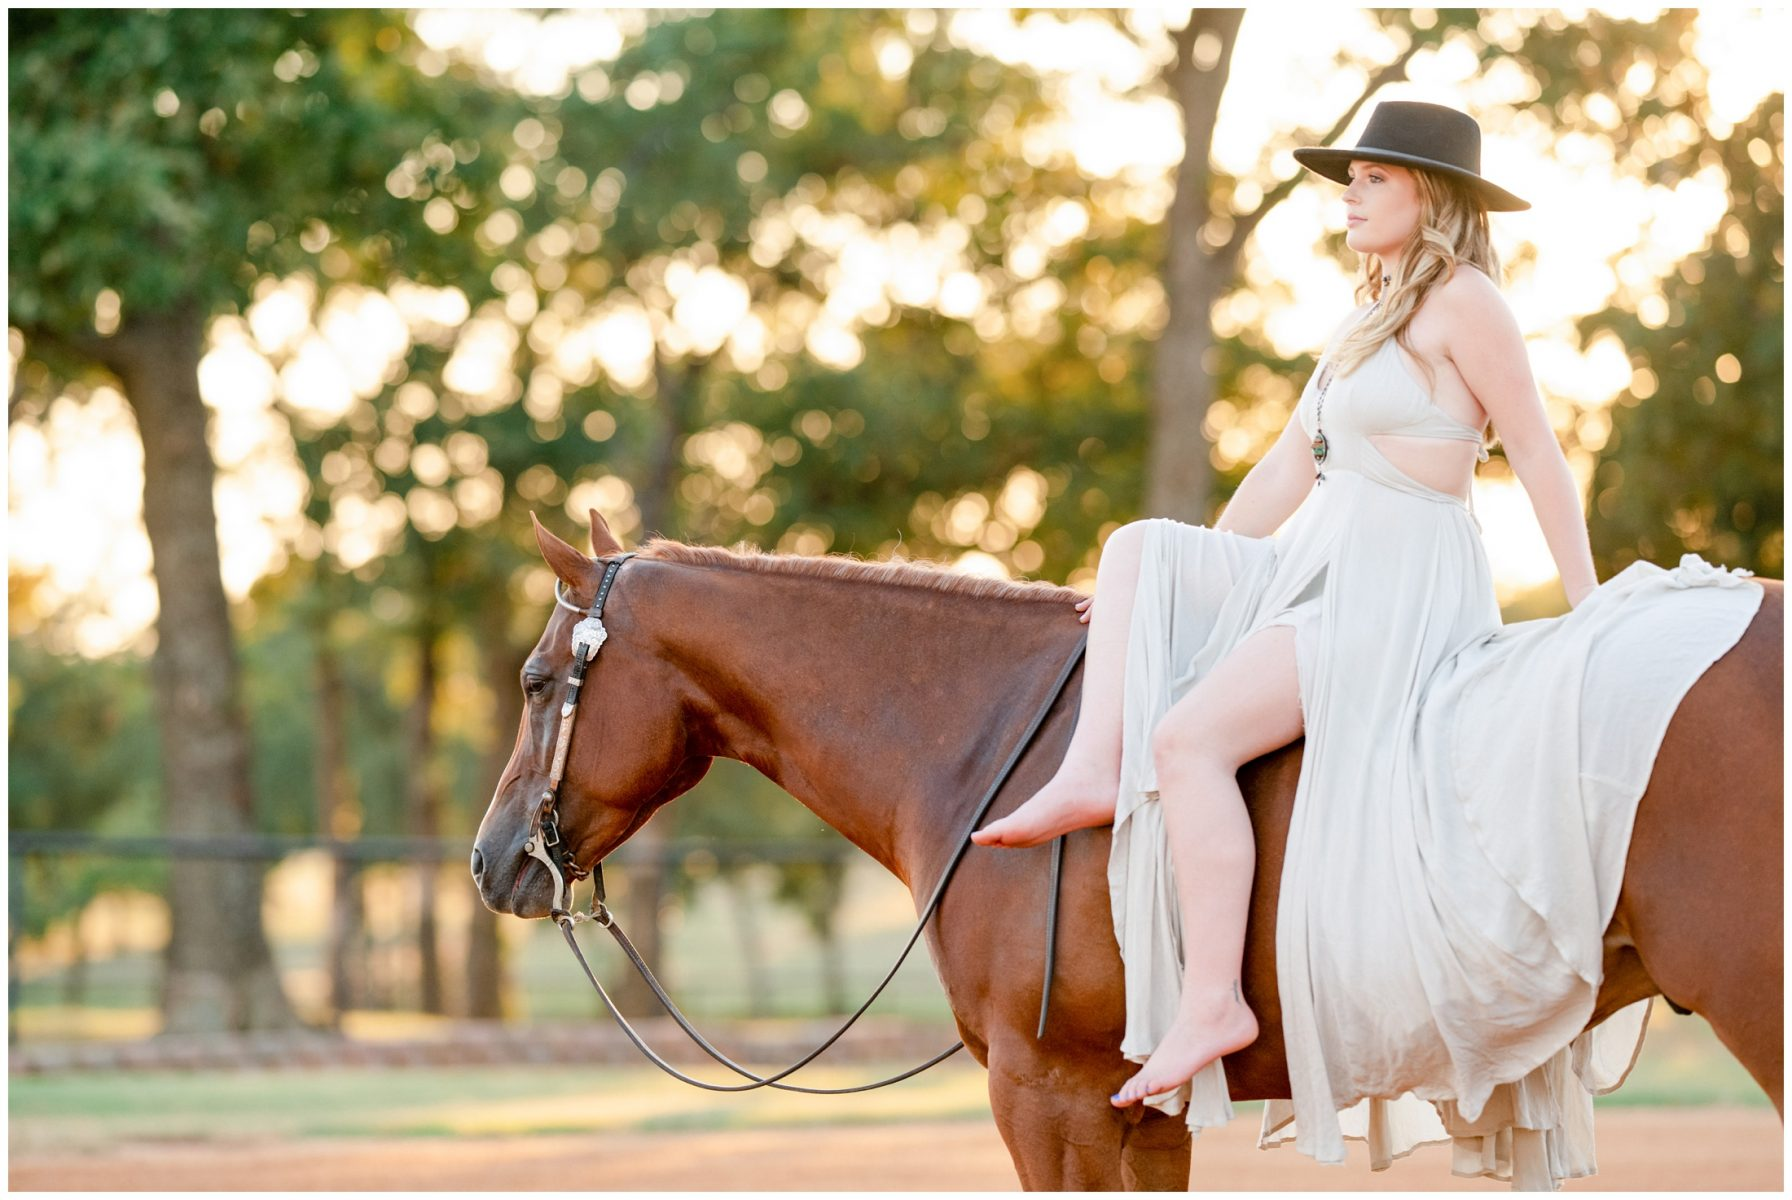 http://kirstiemarie.com/wp-content/uploads/2019/10/Millie-Anderson-and-Only-After-You-Vickery-Performance-Horses-Pilot-Point-Texas-AQHYA-Kirstie-Marie-Photography_0013-1.jpg